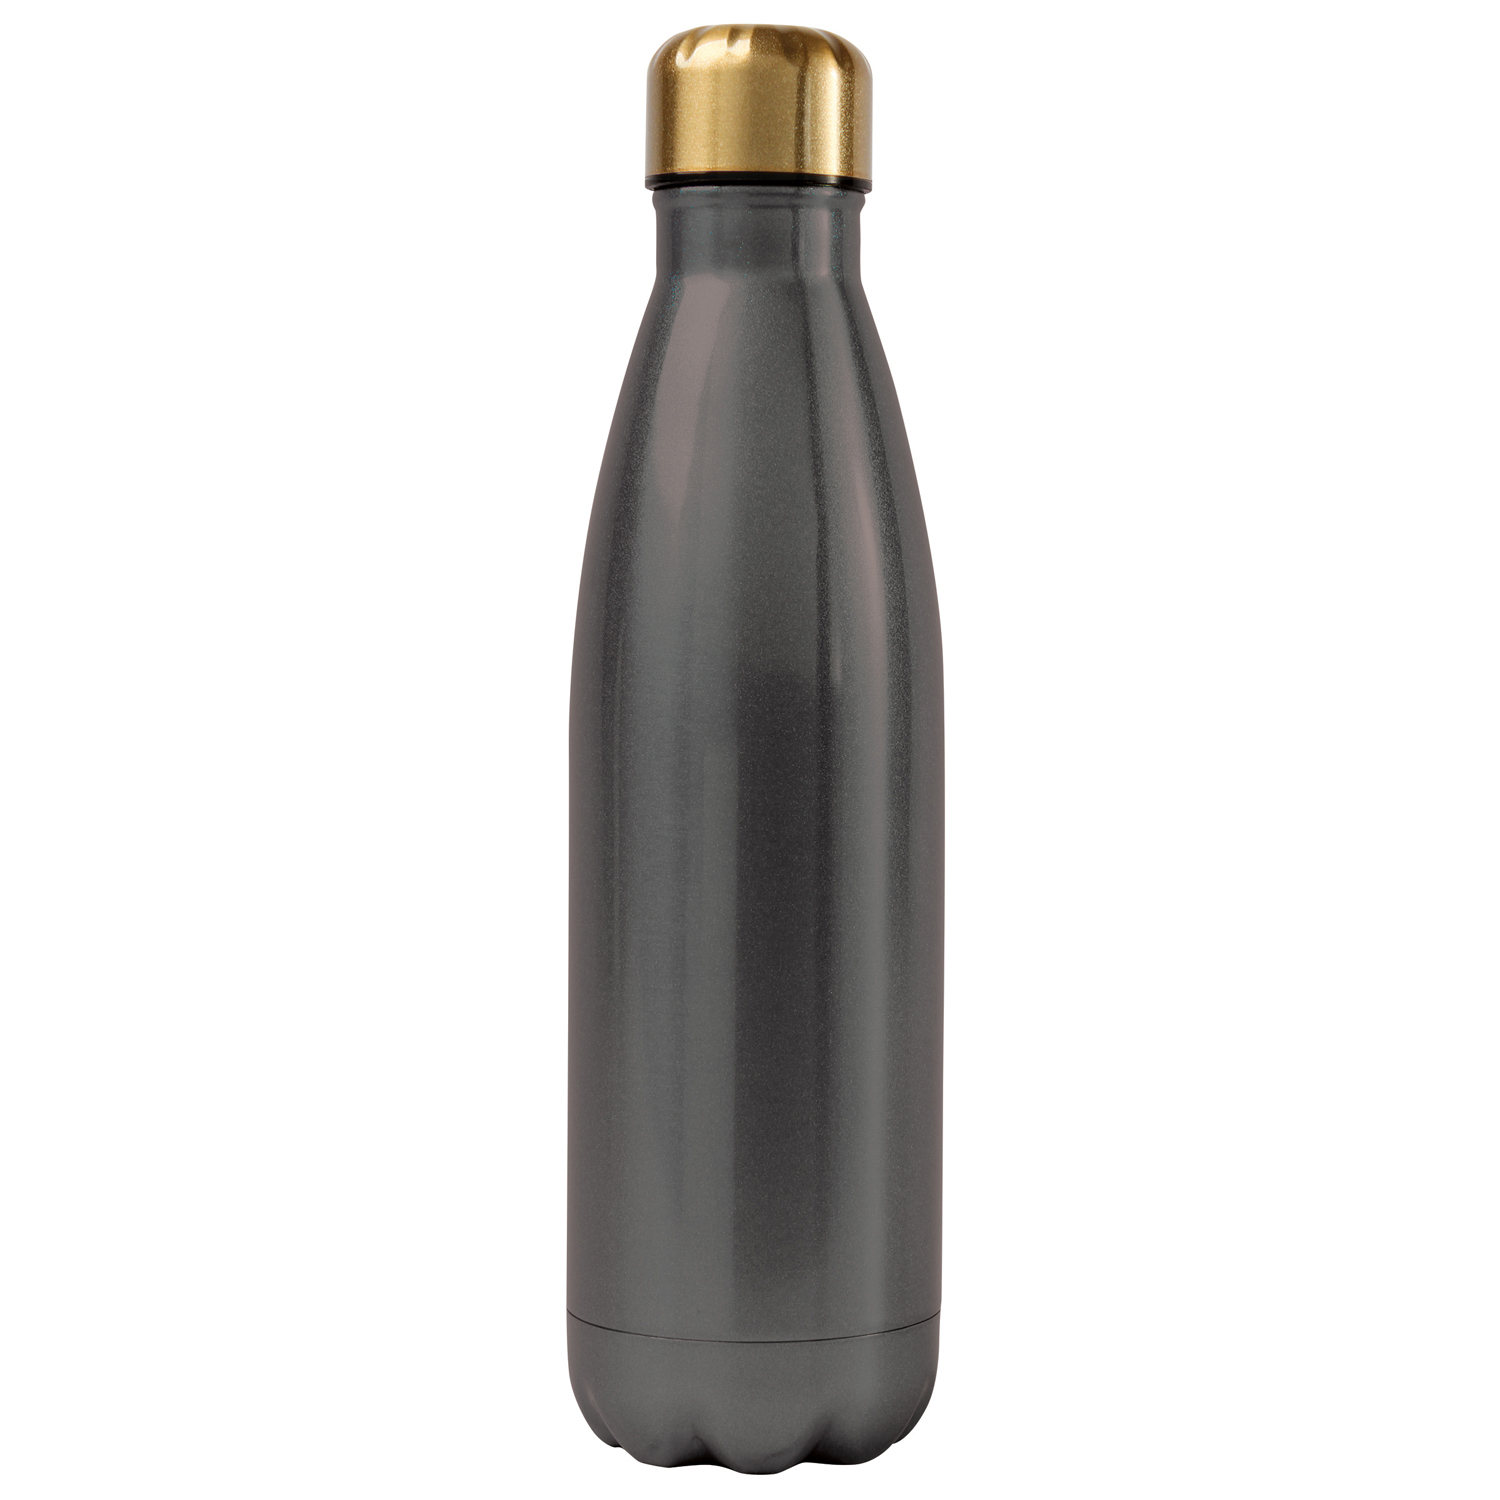 Charcoal Stainless Steel Water Bottle